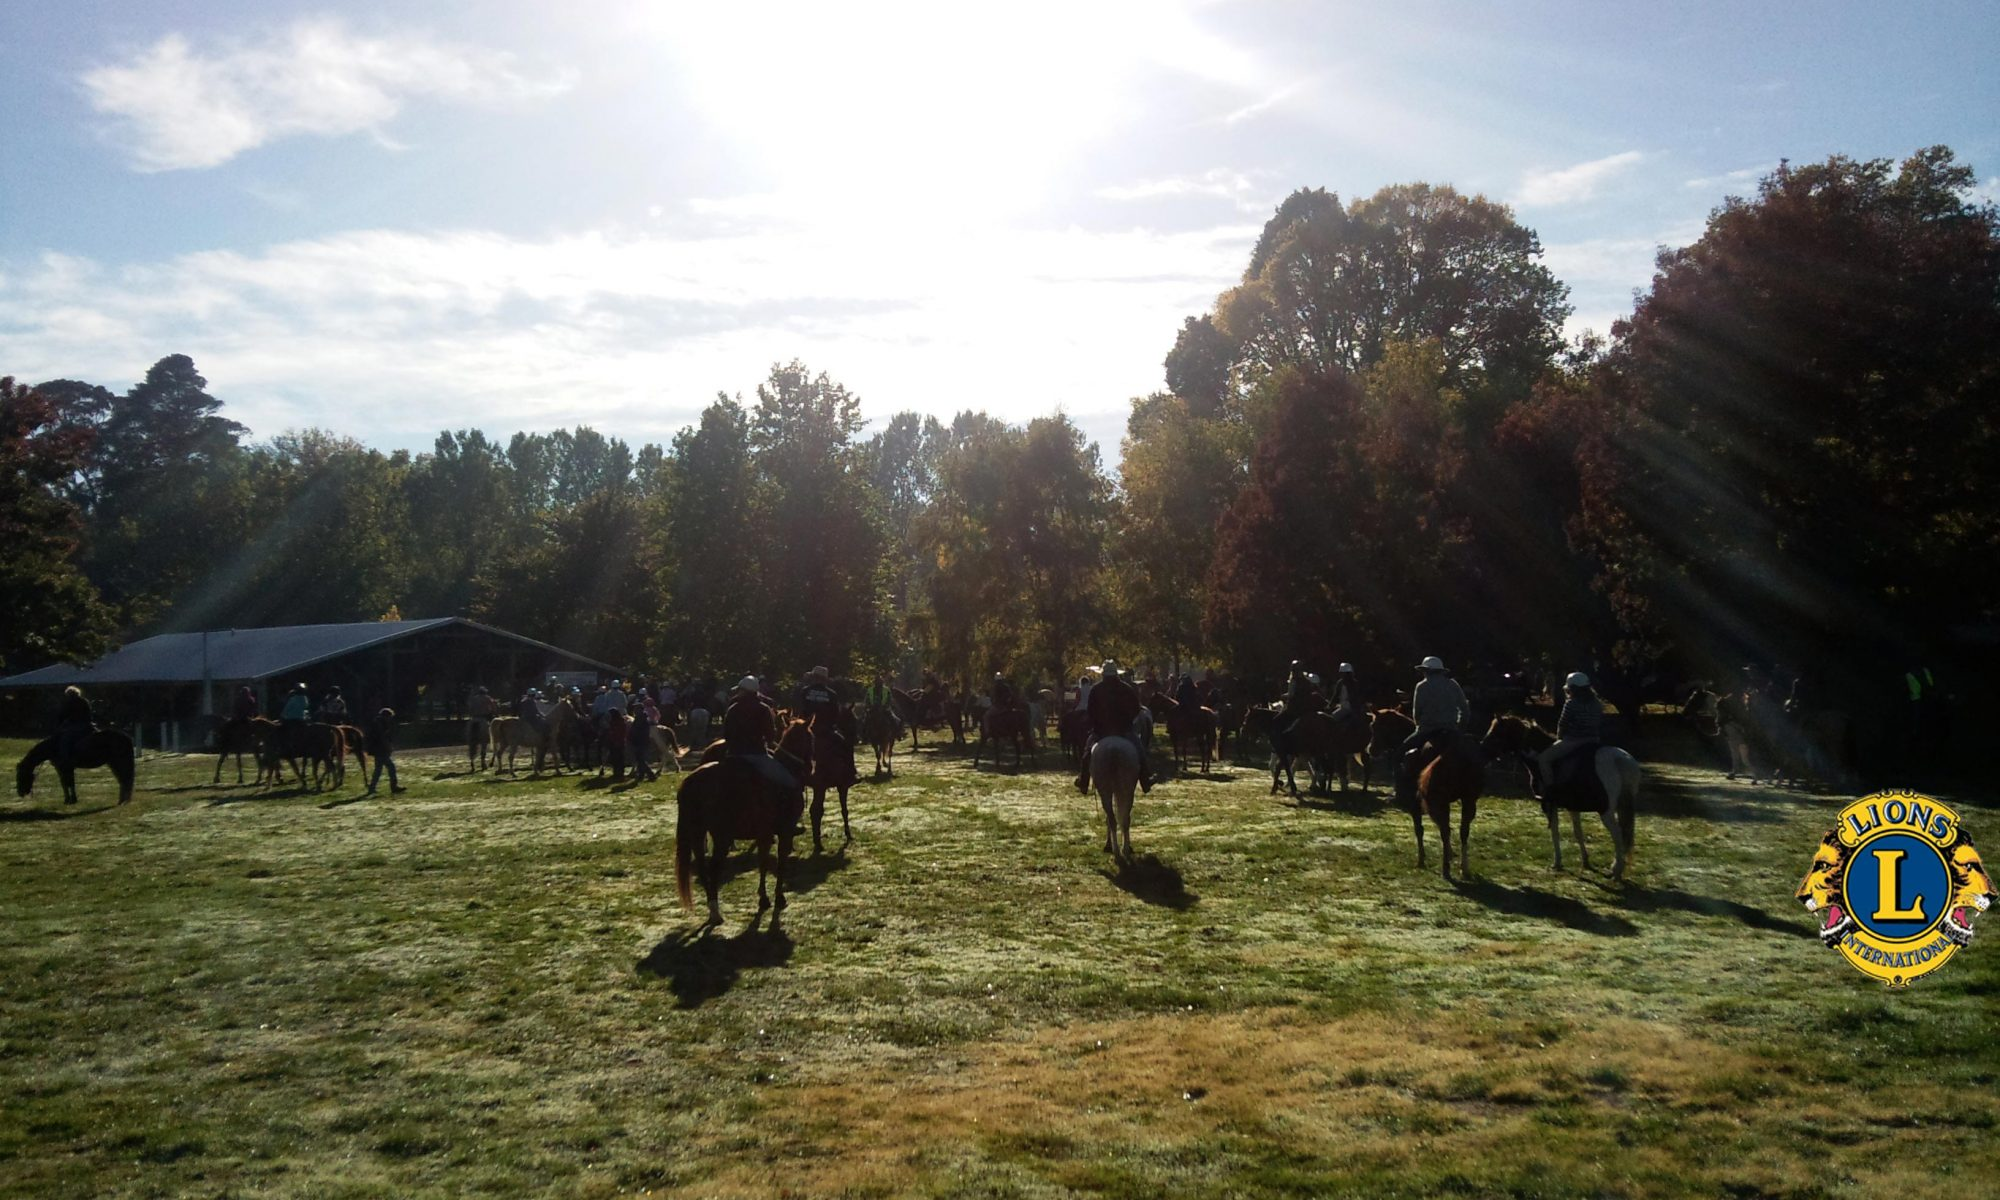 Lions Charity Trail Ride